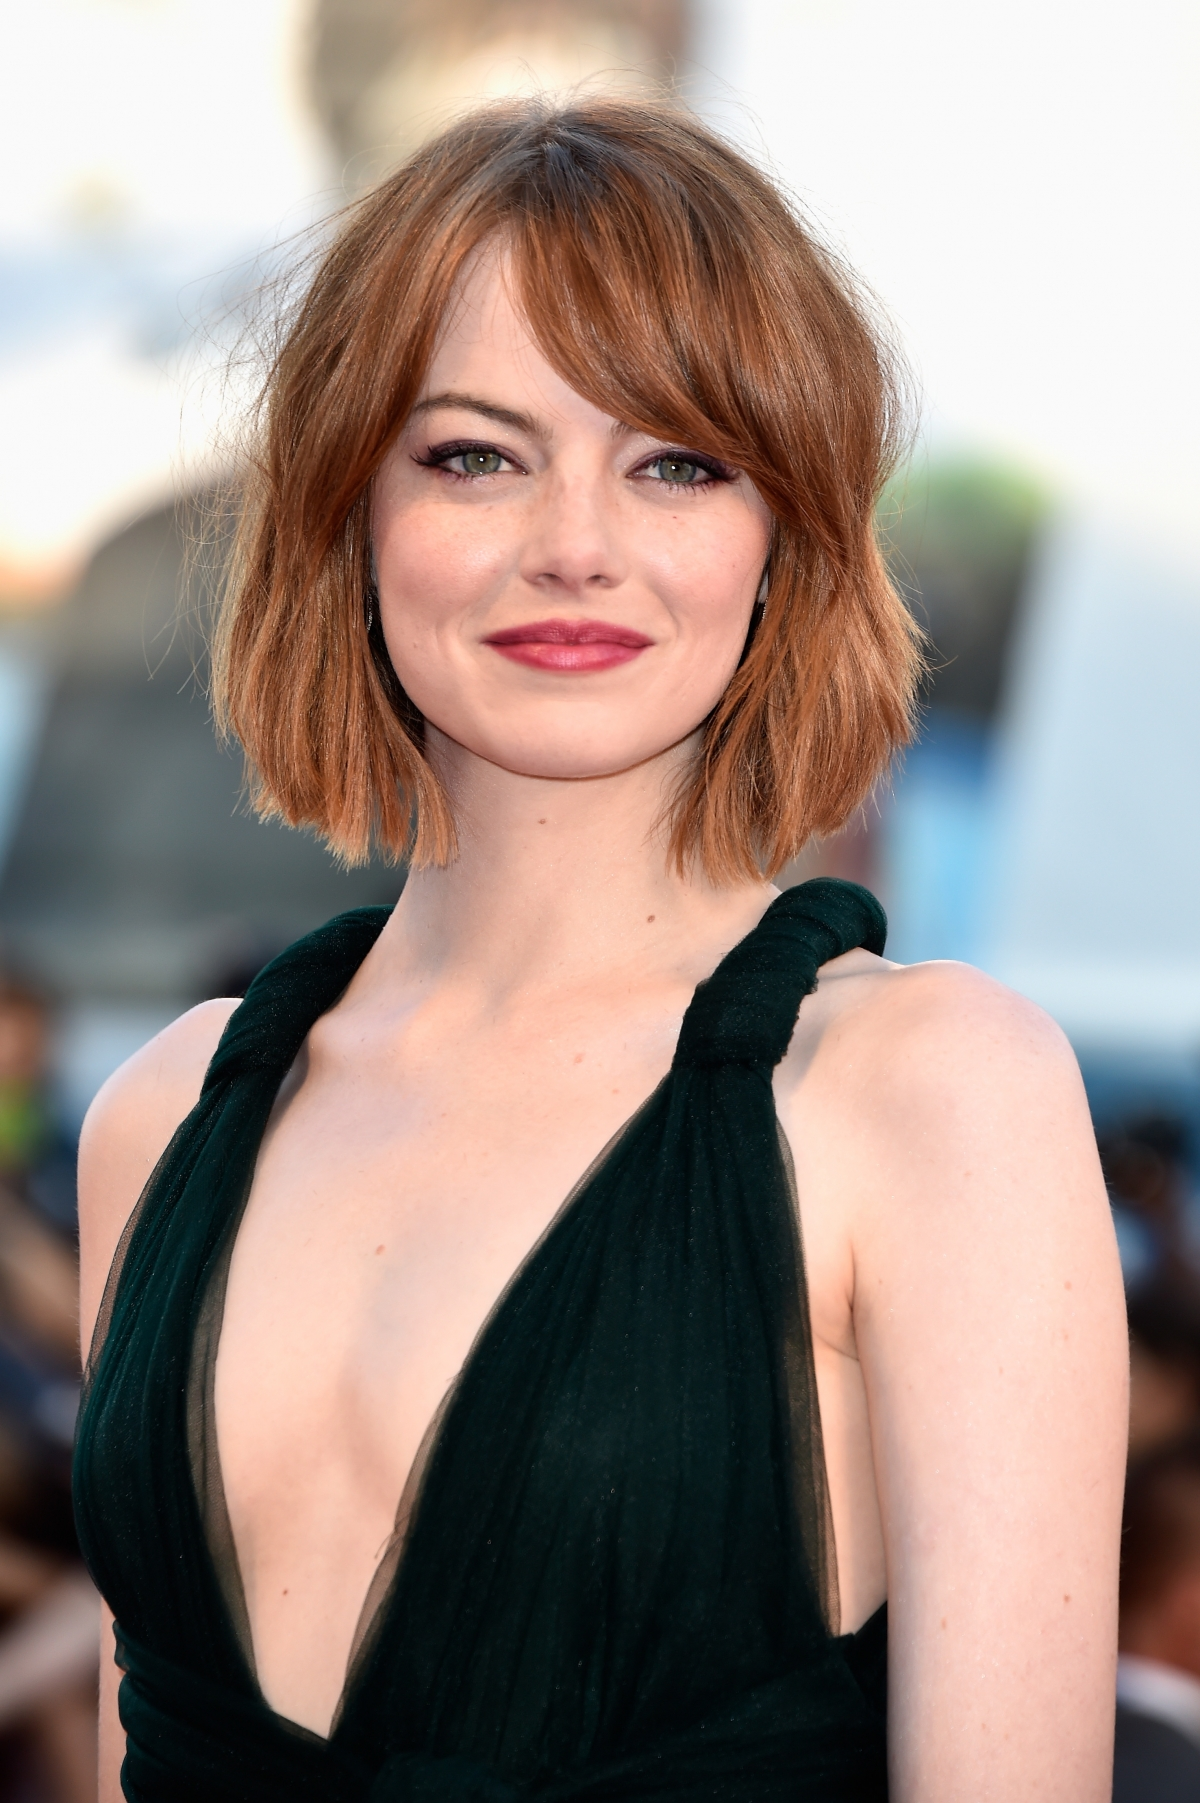 Young Emma Stone nudes (56 photos), Topless, Paparazzi, Boobs, braless 2017